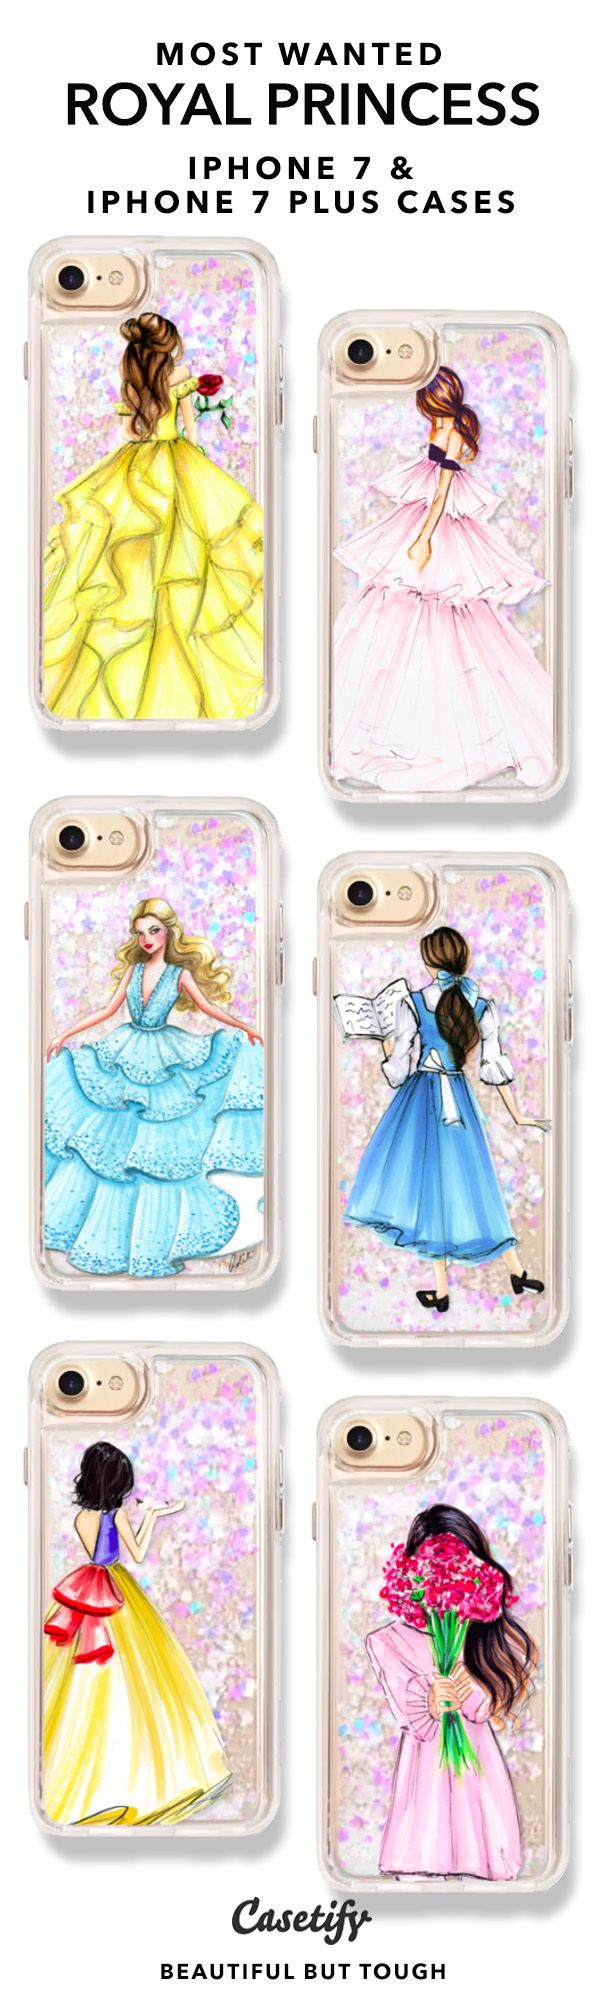 """Princess is a Girl whose got a Brain who always speaks her mind."" - Mulan 